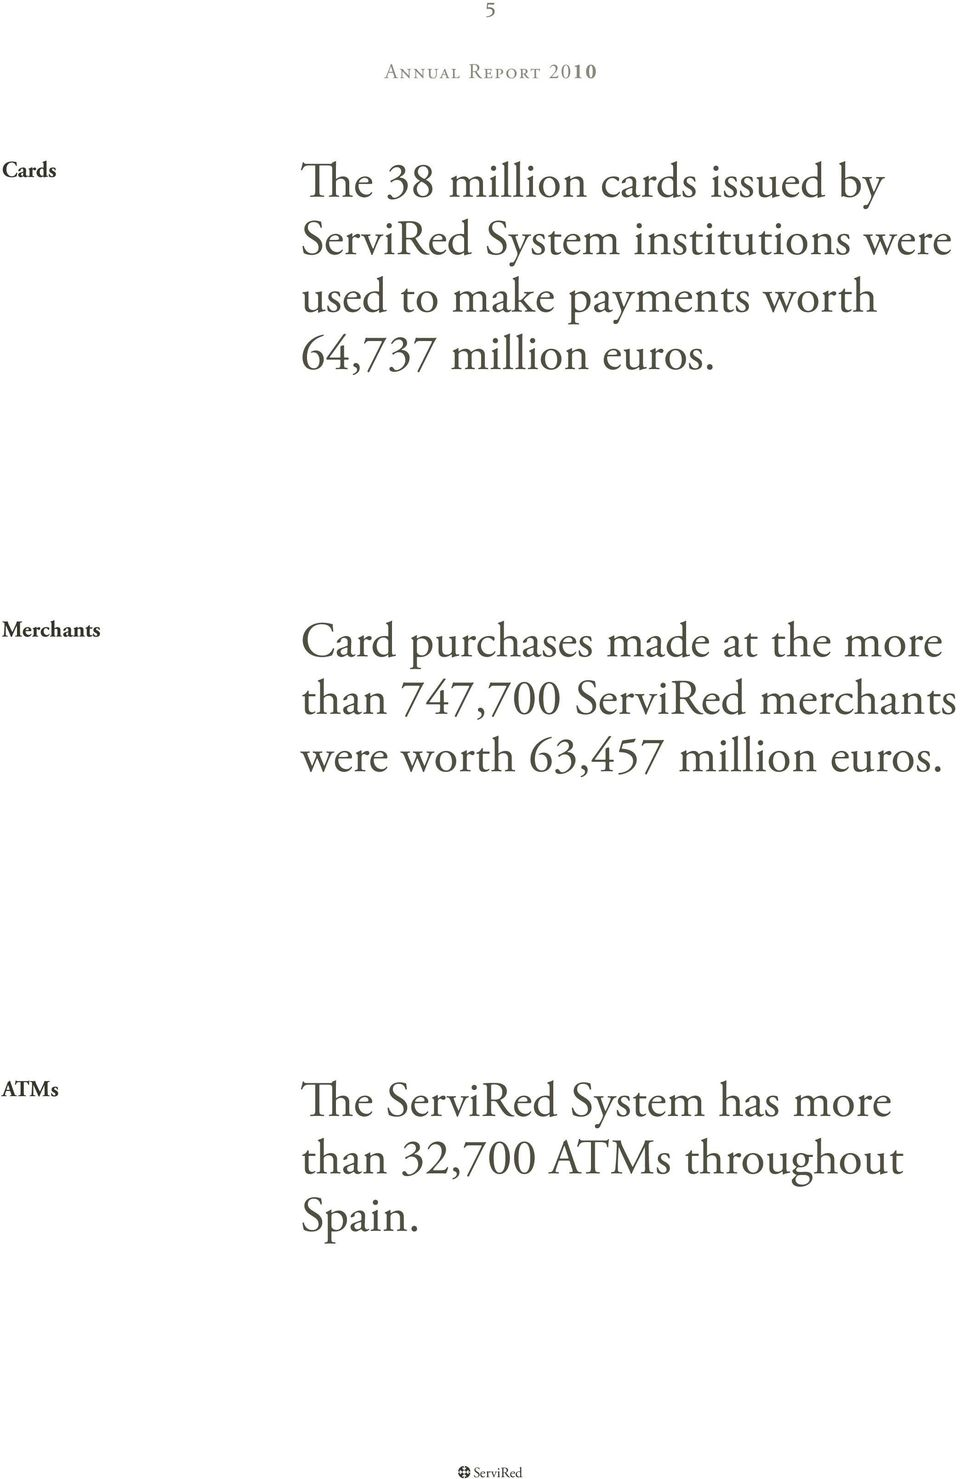 Merchants Card purchases made at the more than 747,700 ServiRed merchants were